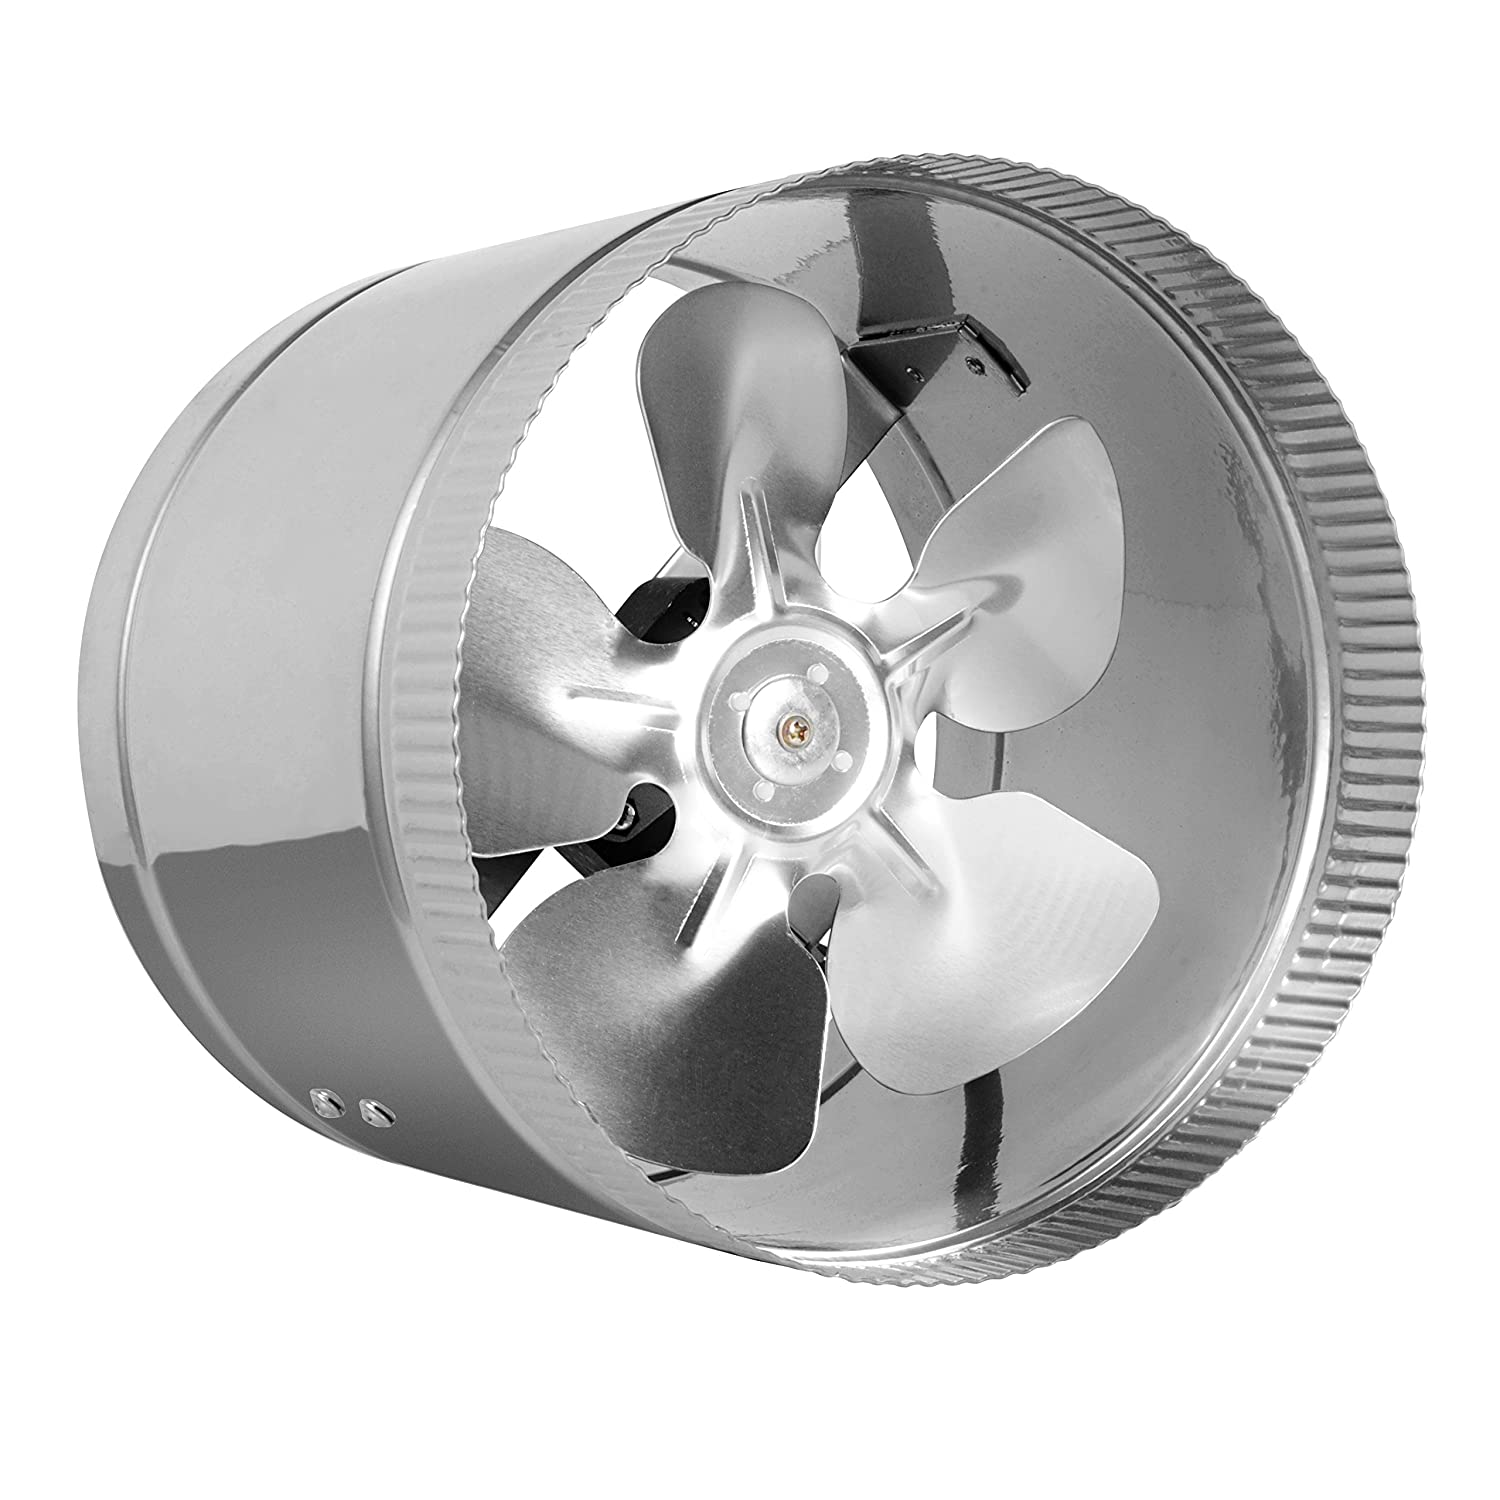 Great For Grow Tent Exhaust and Intake Metal Duct Booster Fan ETL Listed Register Booster For 8 Inch Ducts 8 Inline Fan Pre-Wired 6 FT Grounded Cord 400 CFM